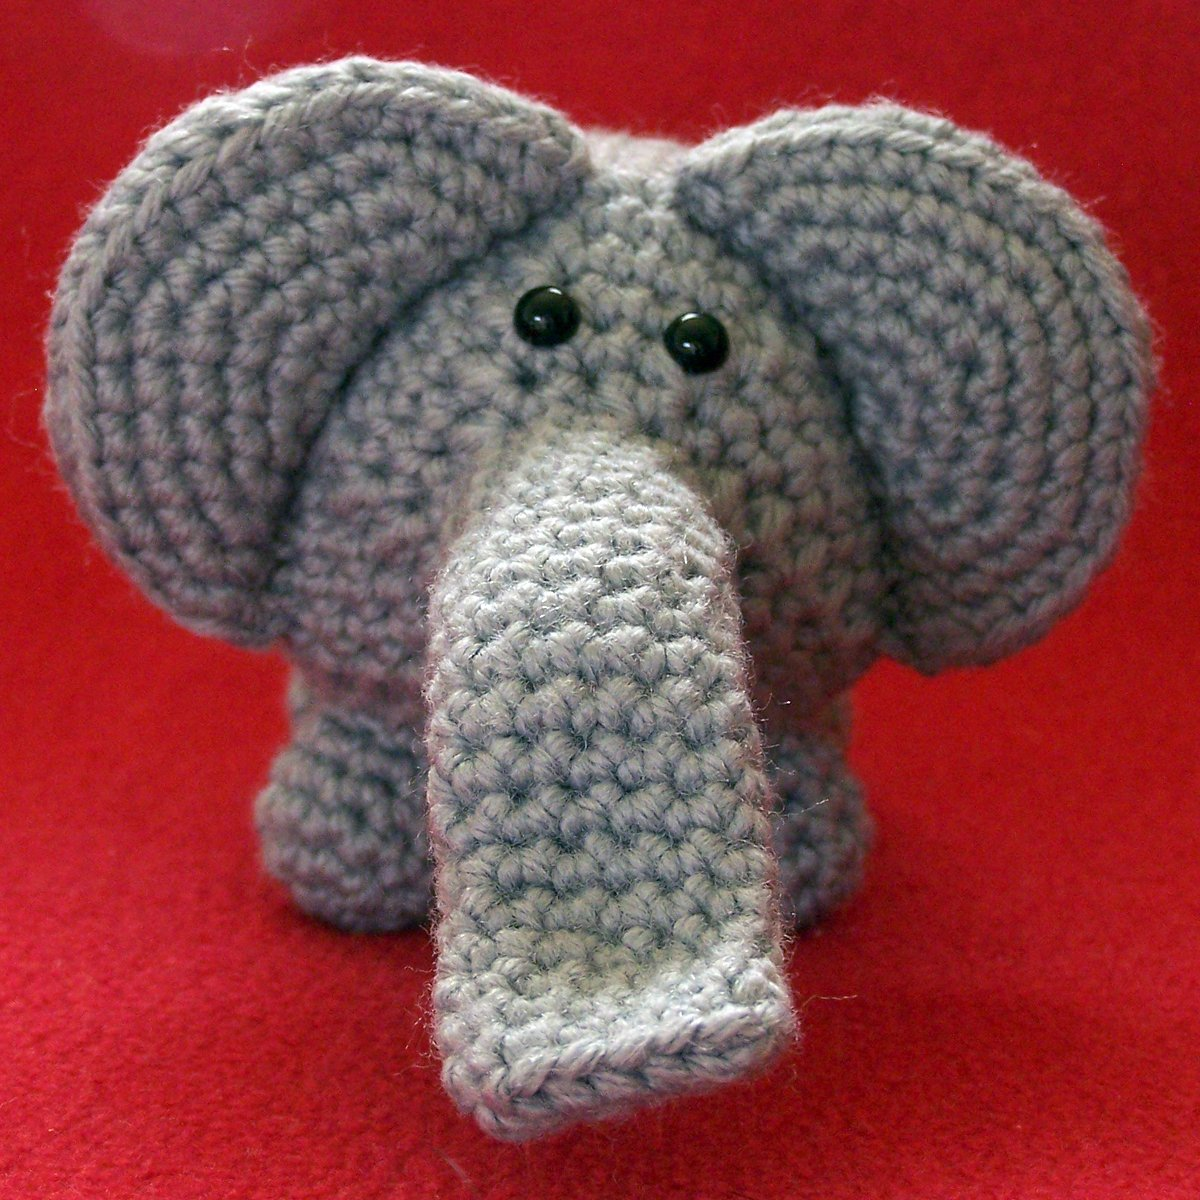 amigurumi ELEPHANT - gray - cute crochet stuffed toy animal